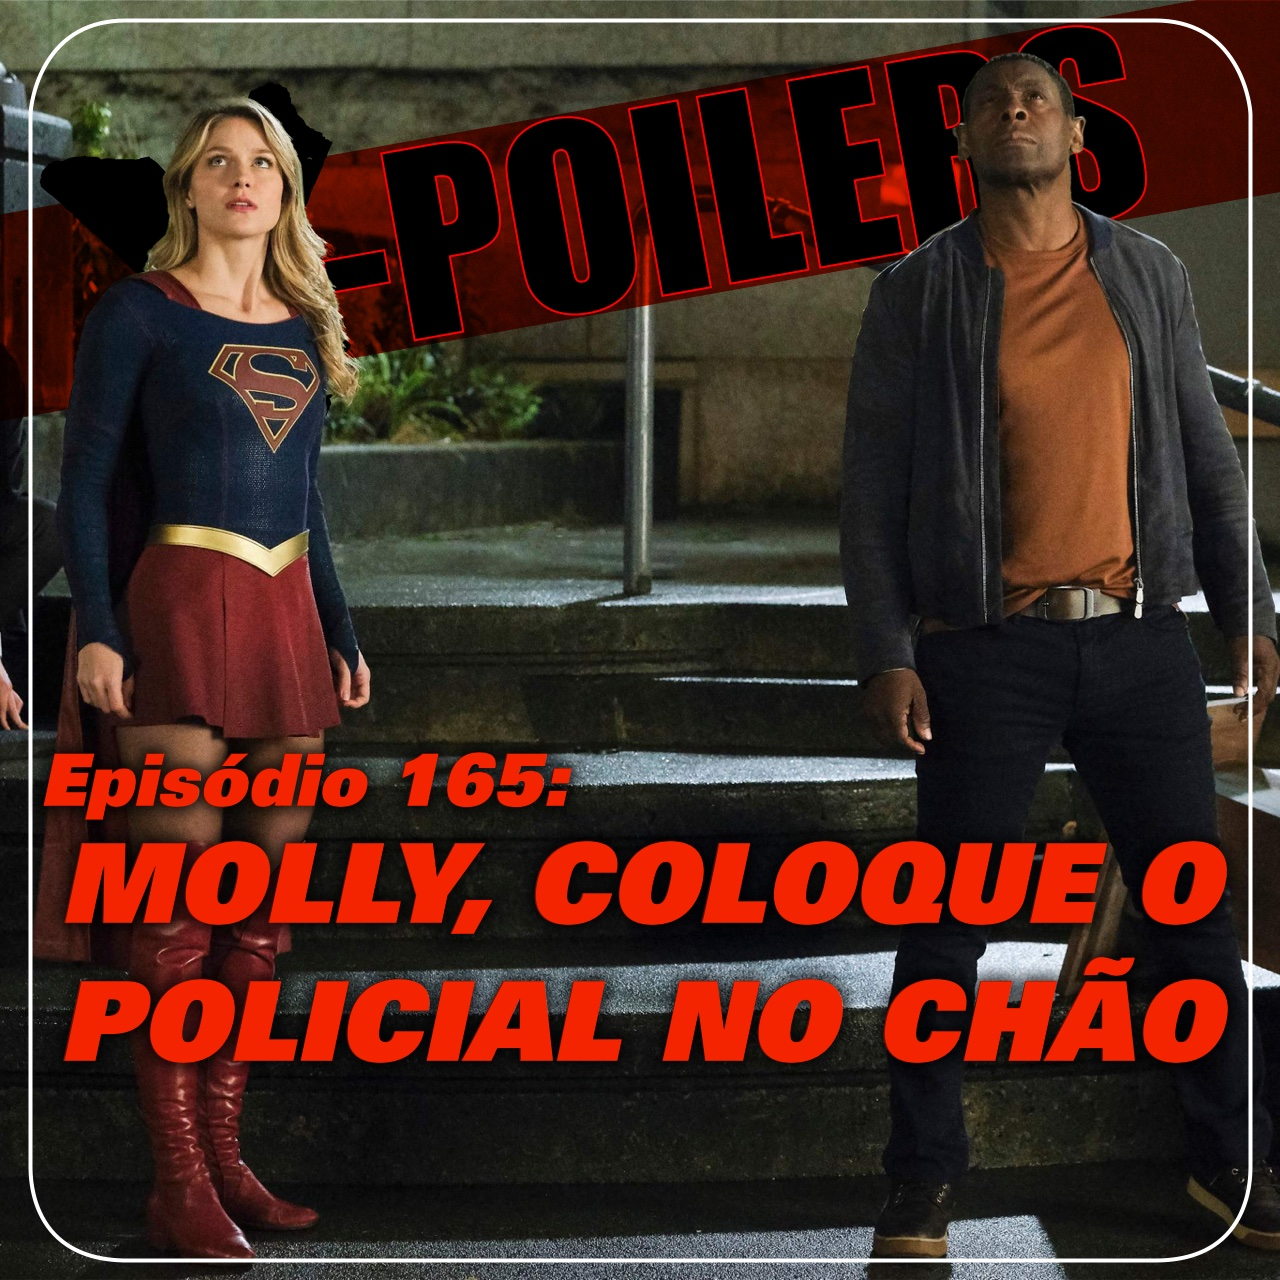 Molly, coloque o policial no chão